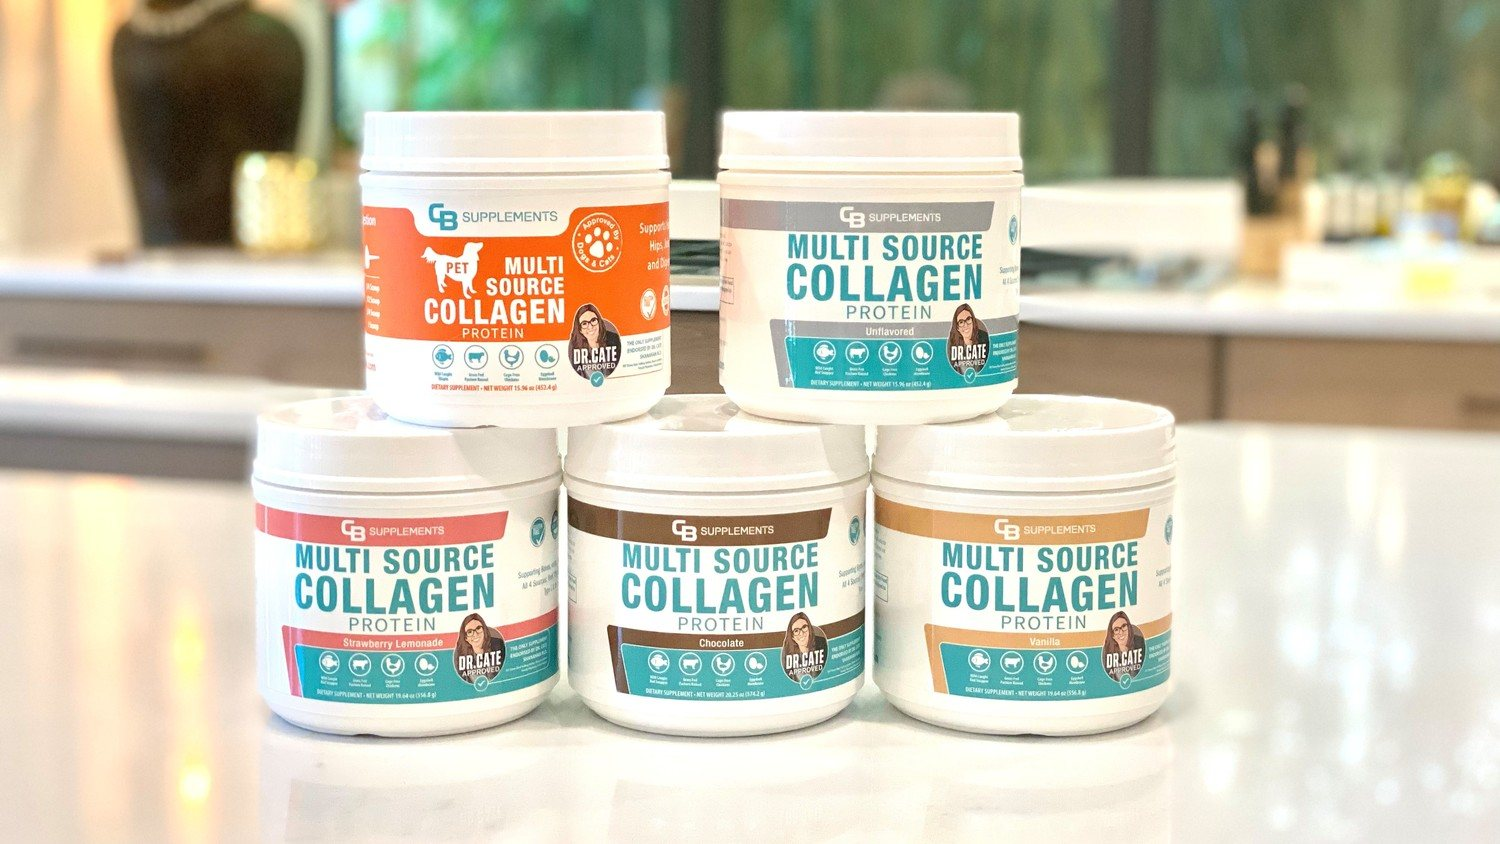 Multi Collagen Every Day lineup